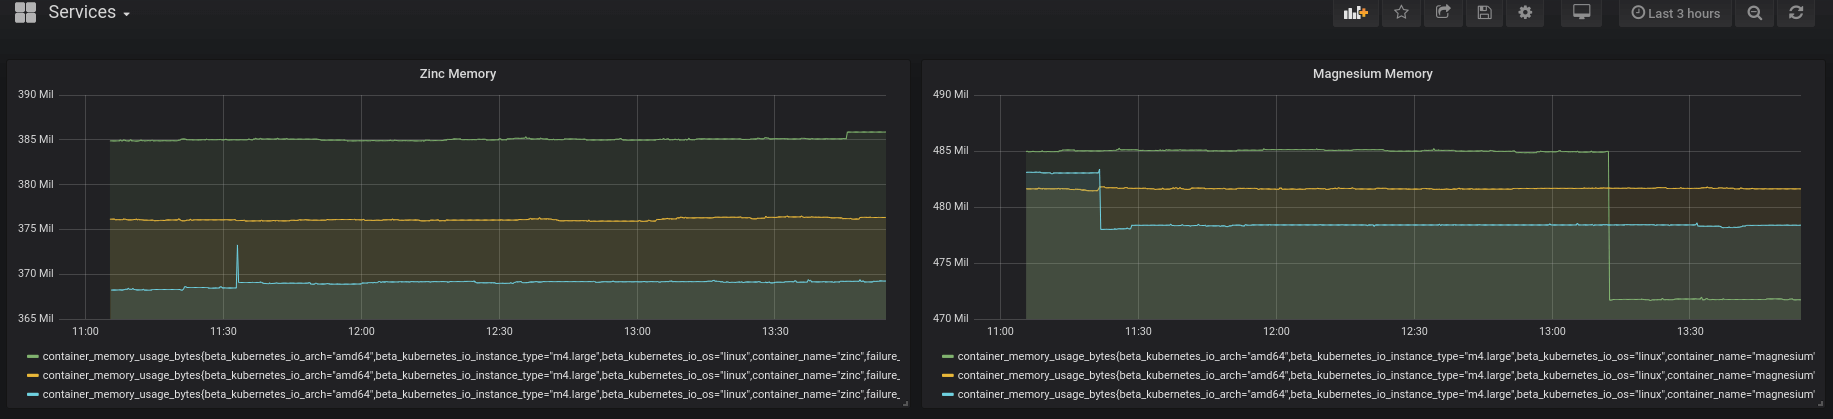 Visualizing cluster data in Grafana.